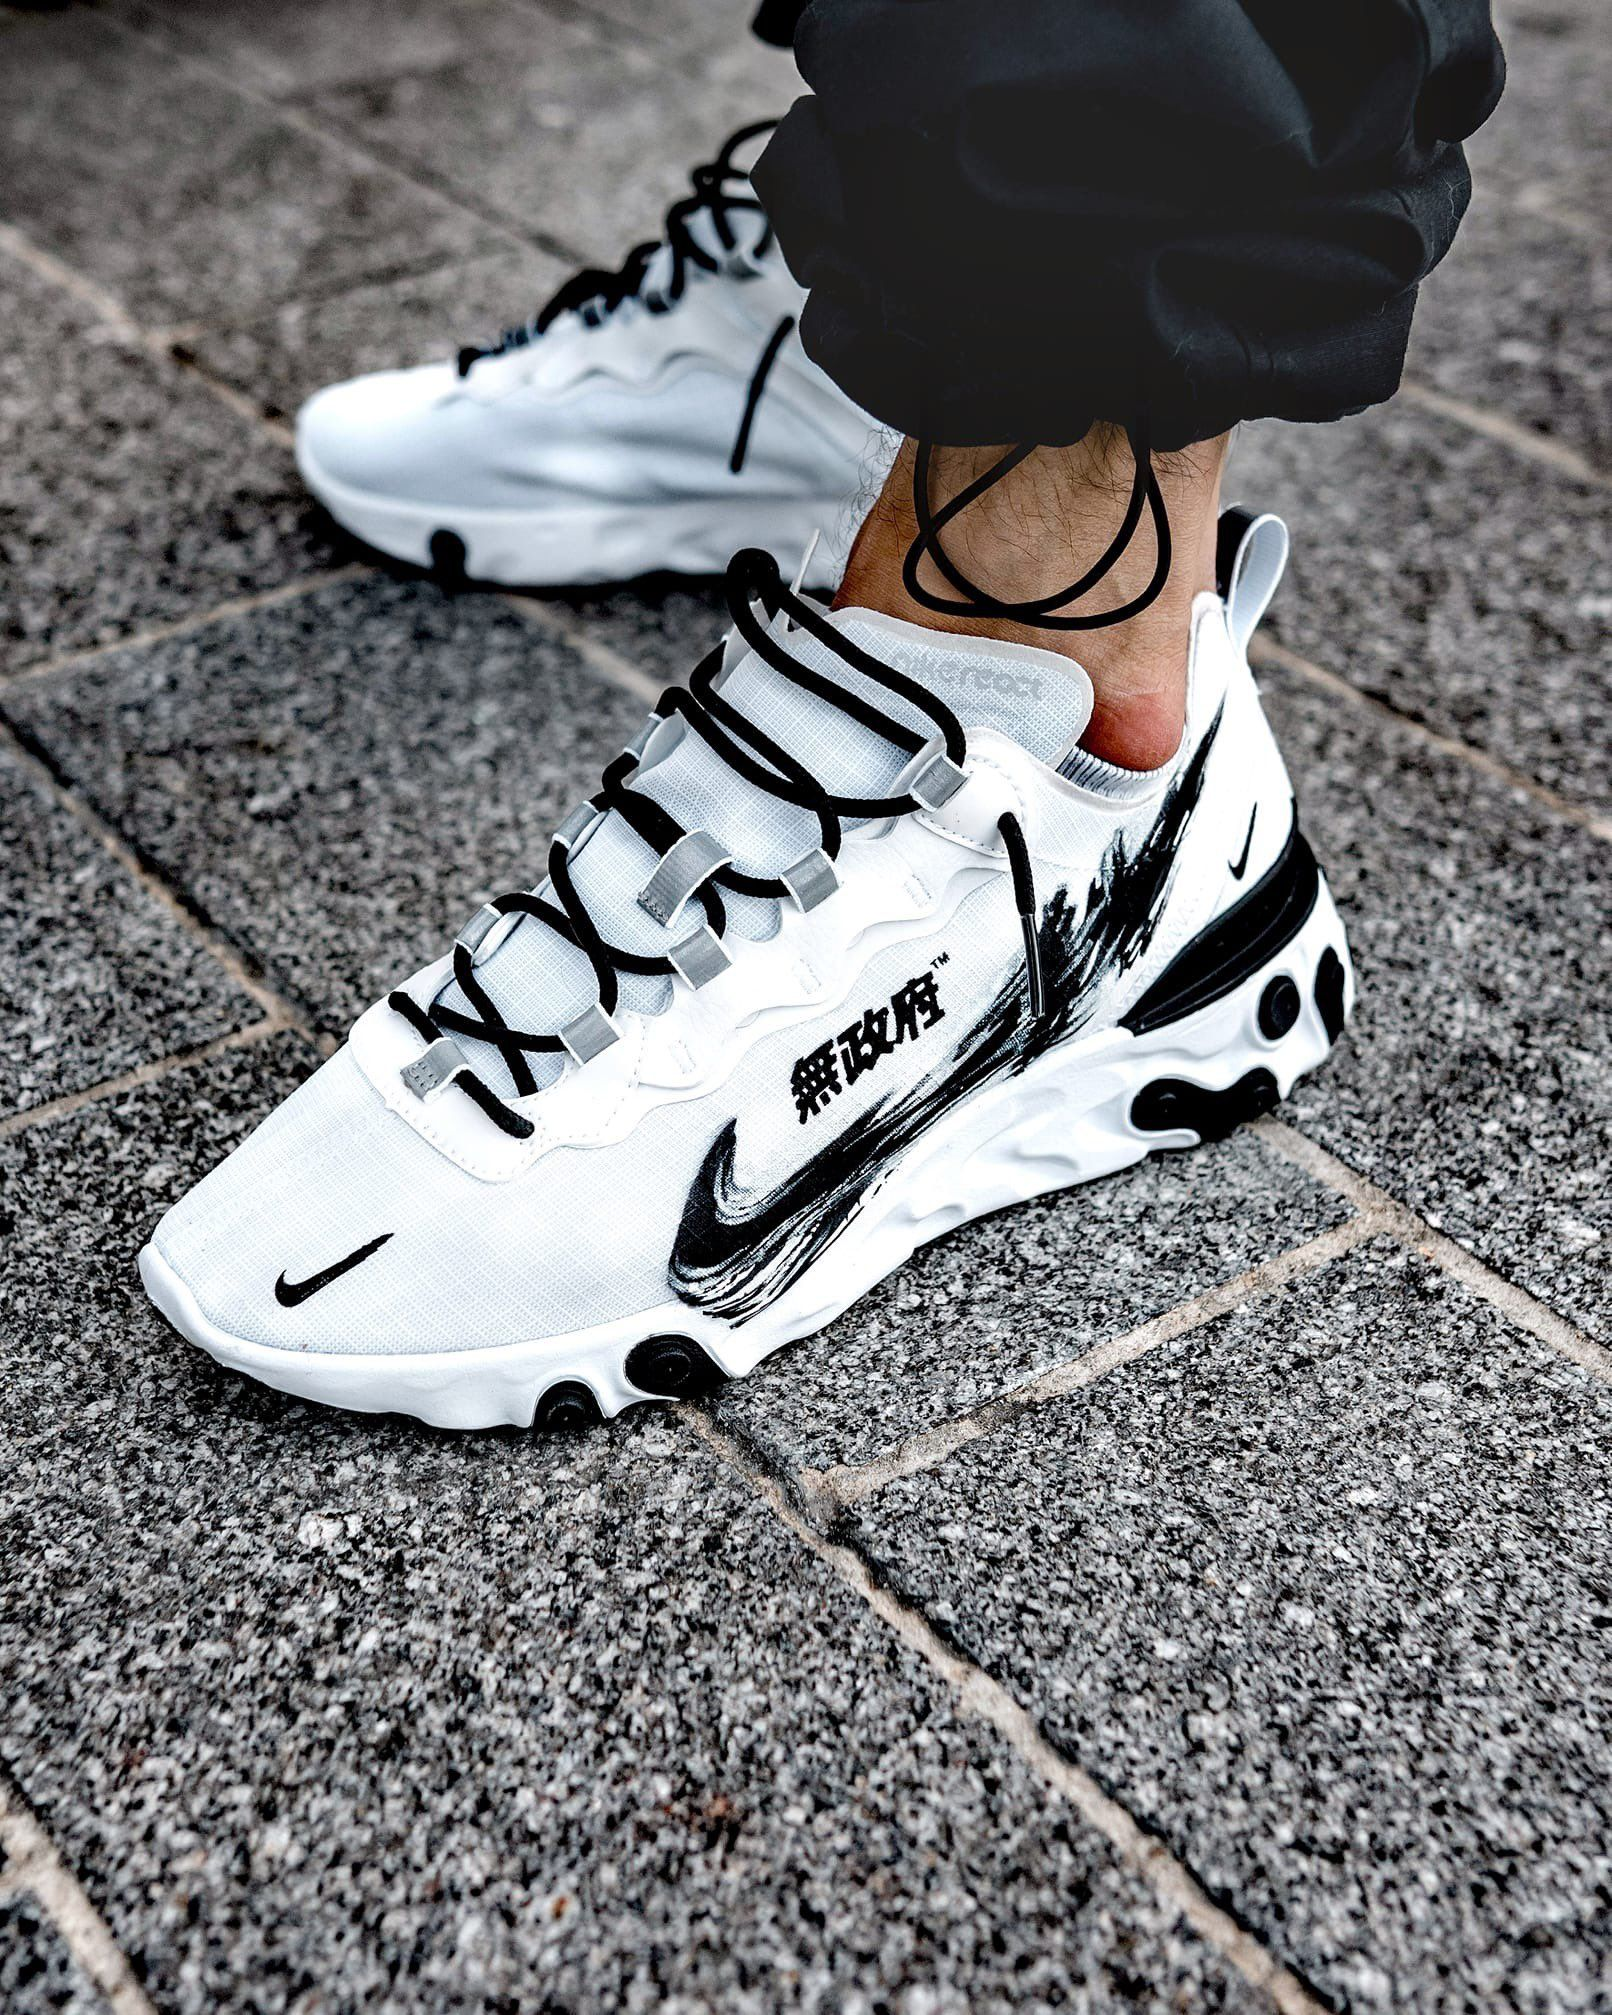 Modern Notoriety On Twitter Sneakers Fashion Mens Nike Shoes Sneakers Men Fashion